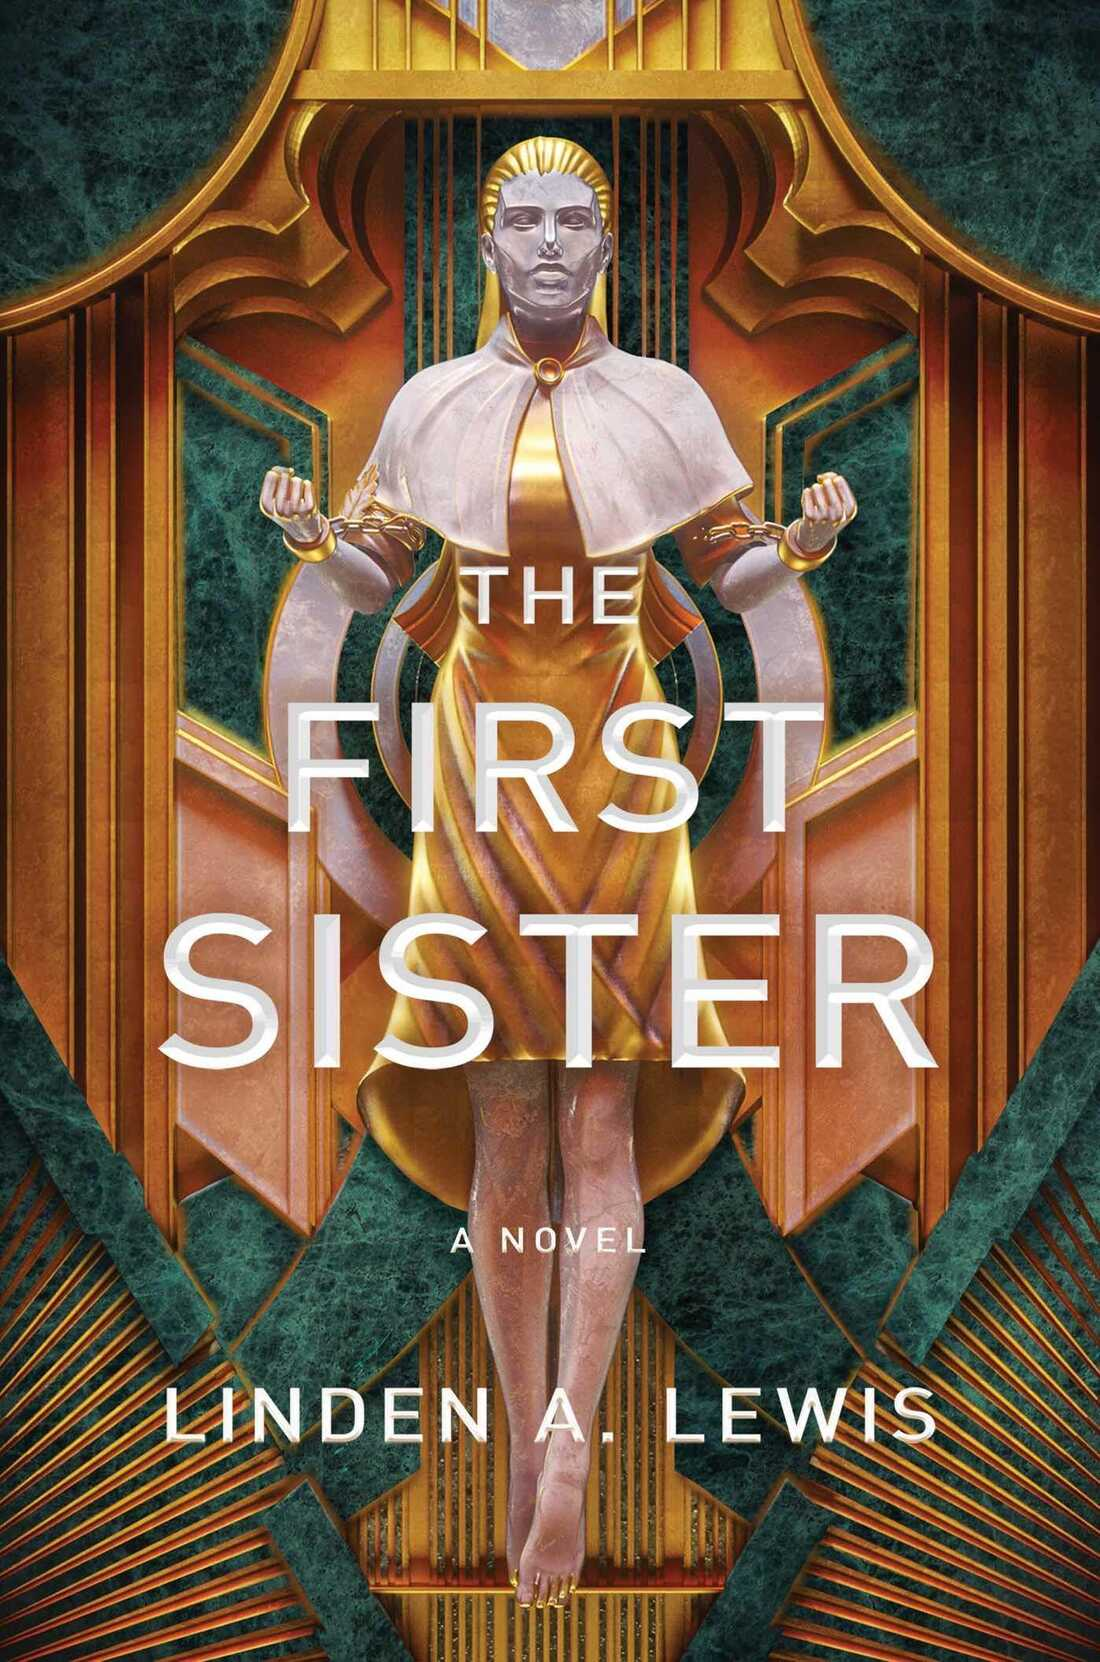 The First Sister, by Linden A. Lewis